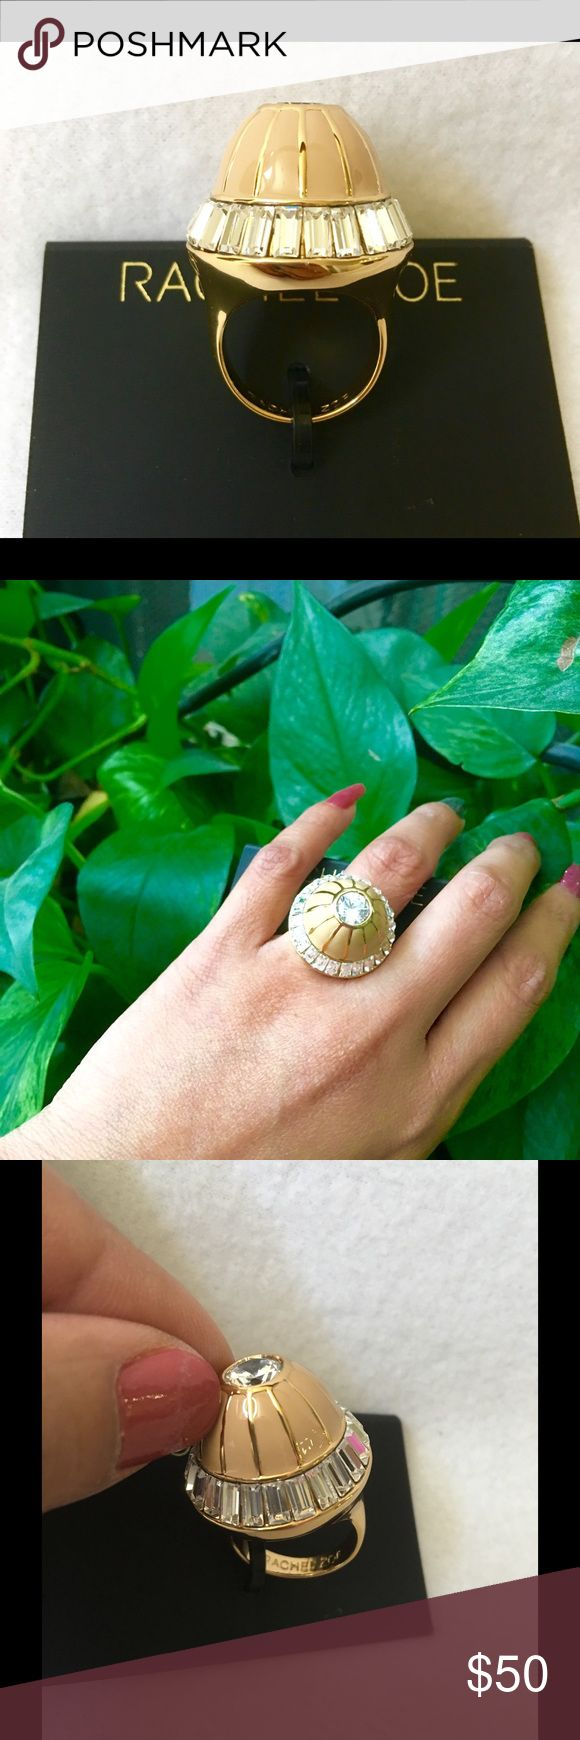 "Authentic Rachel Zoe Crystal Domed Ring 100% AUTHENTIC. This is the gorgeous & stunning Rachel Zoe Swarovski Crystal Domed Ring. 14k yellow gold plated. Beige enamel shapes domed face. Size 7. Height 1 1/2"" Diameter 1"". A statement piece. Don't miss it. Rachel Zoe Jewelry Rings"